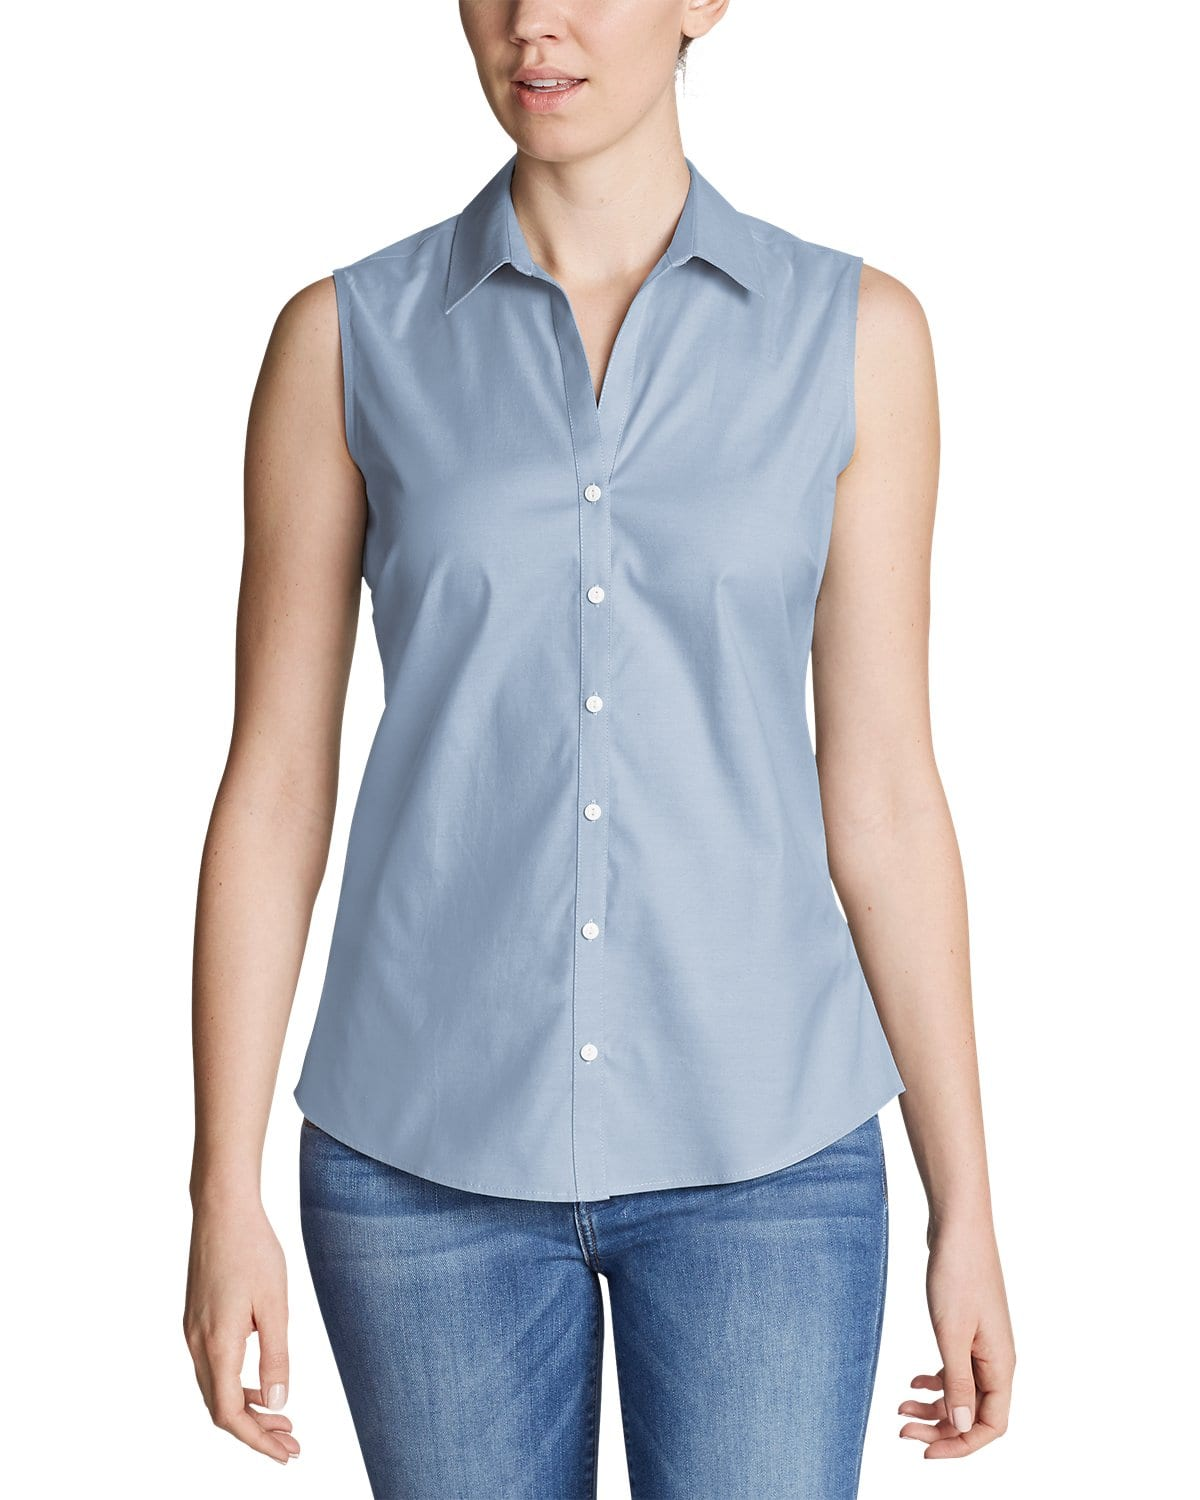 Eddie Bauer - 65% Off Featured Women's Wrinkle Free Shirts from $11.55 Free Shipping $30+